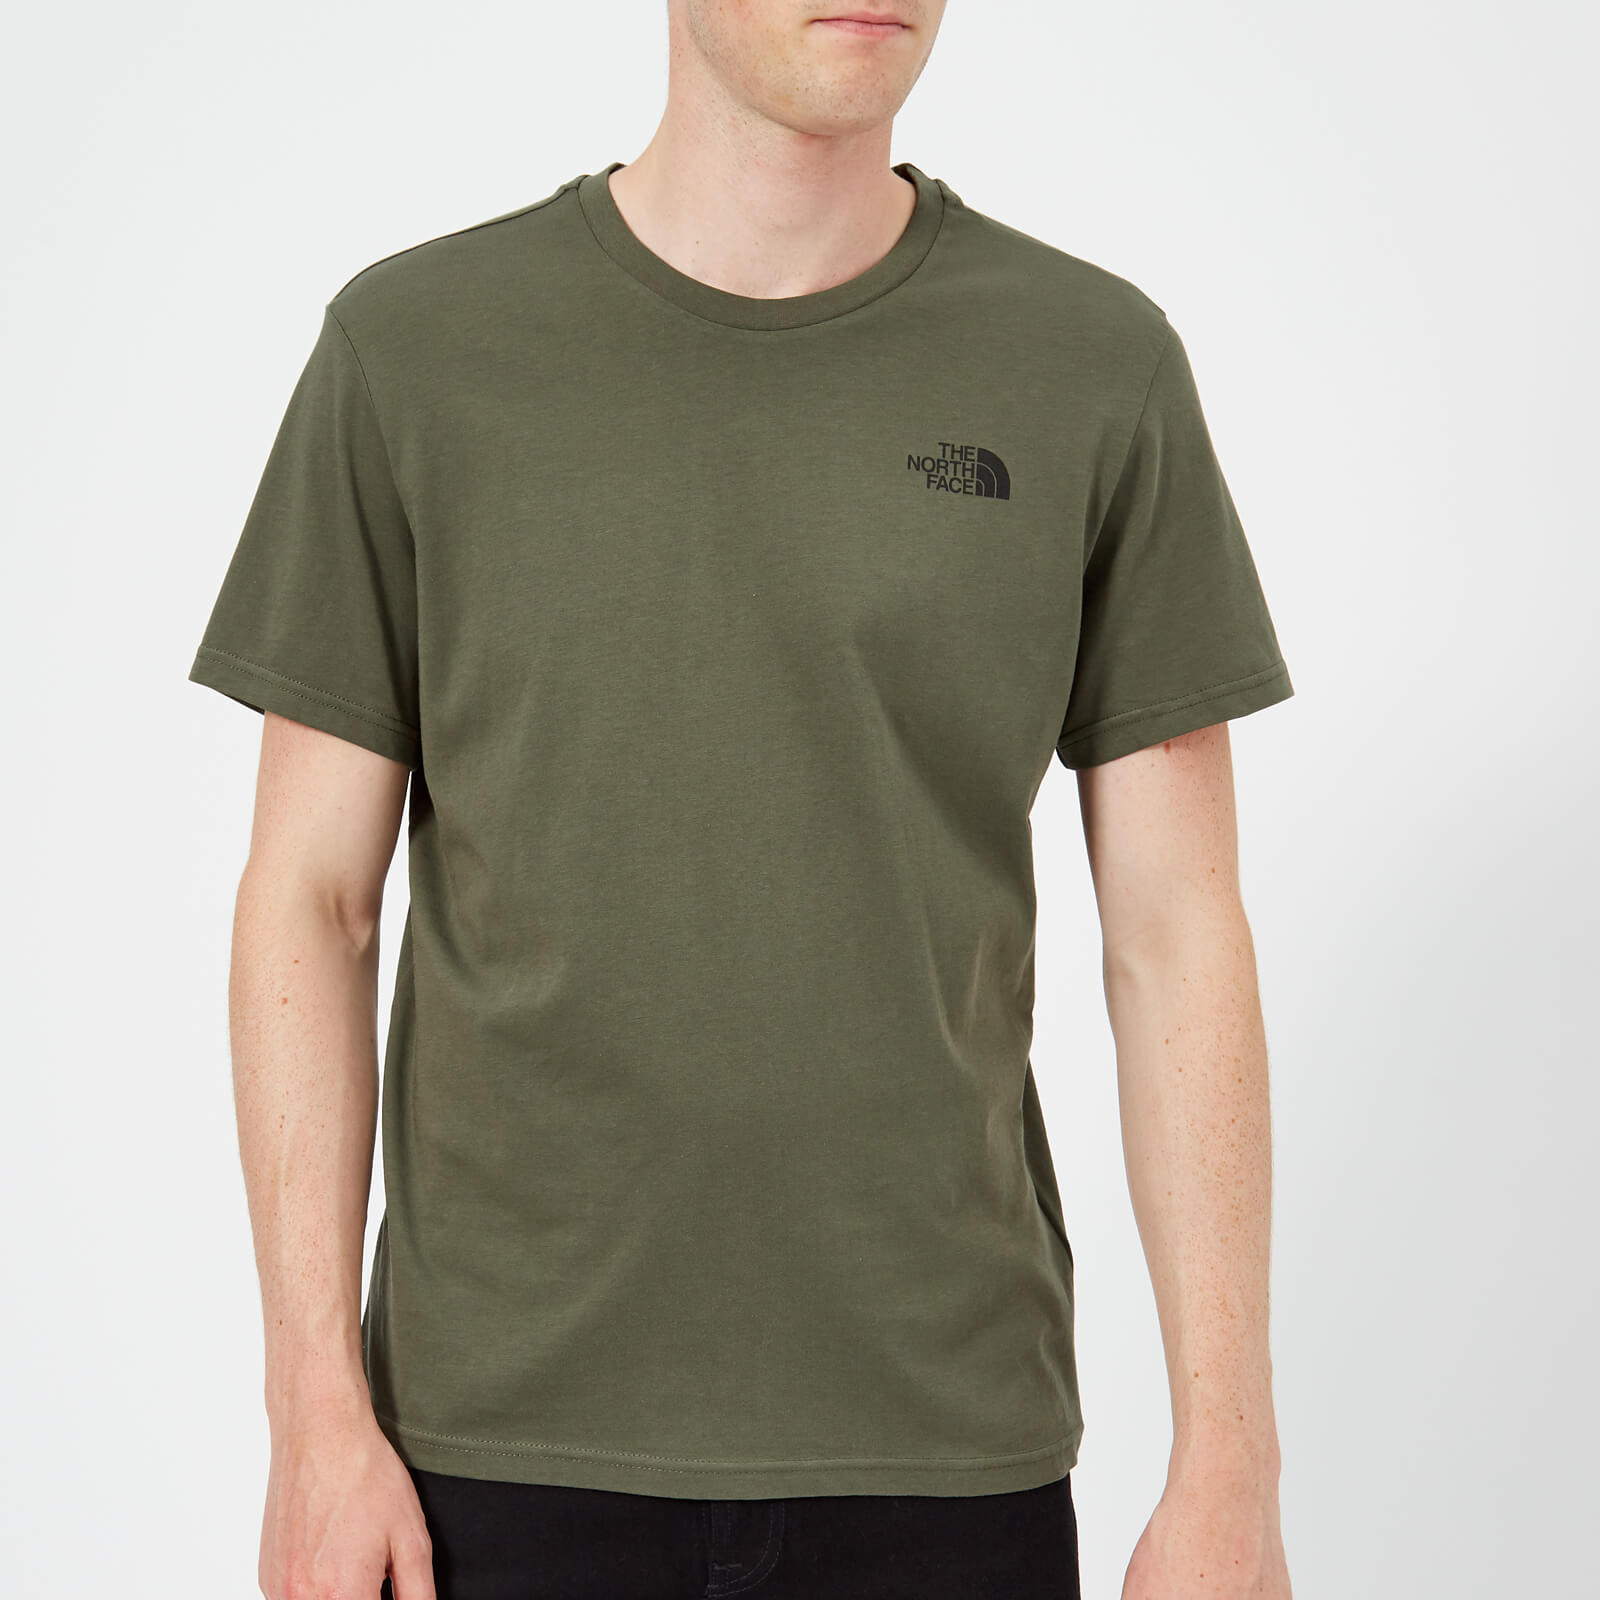 4a9d9e408010 The North Face Men s Short Sleeve Simple Dome T-Shirt - New Taupe Green  Clothing